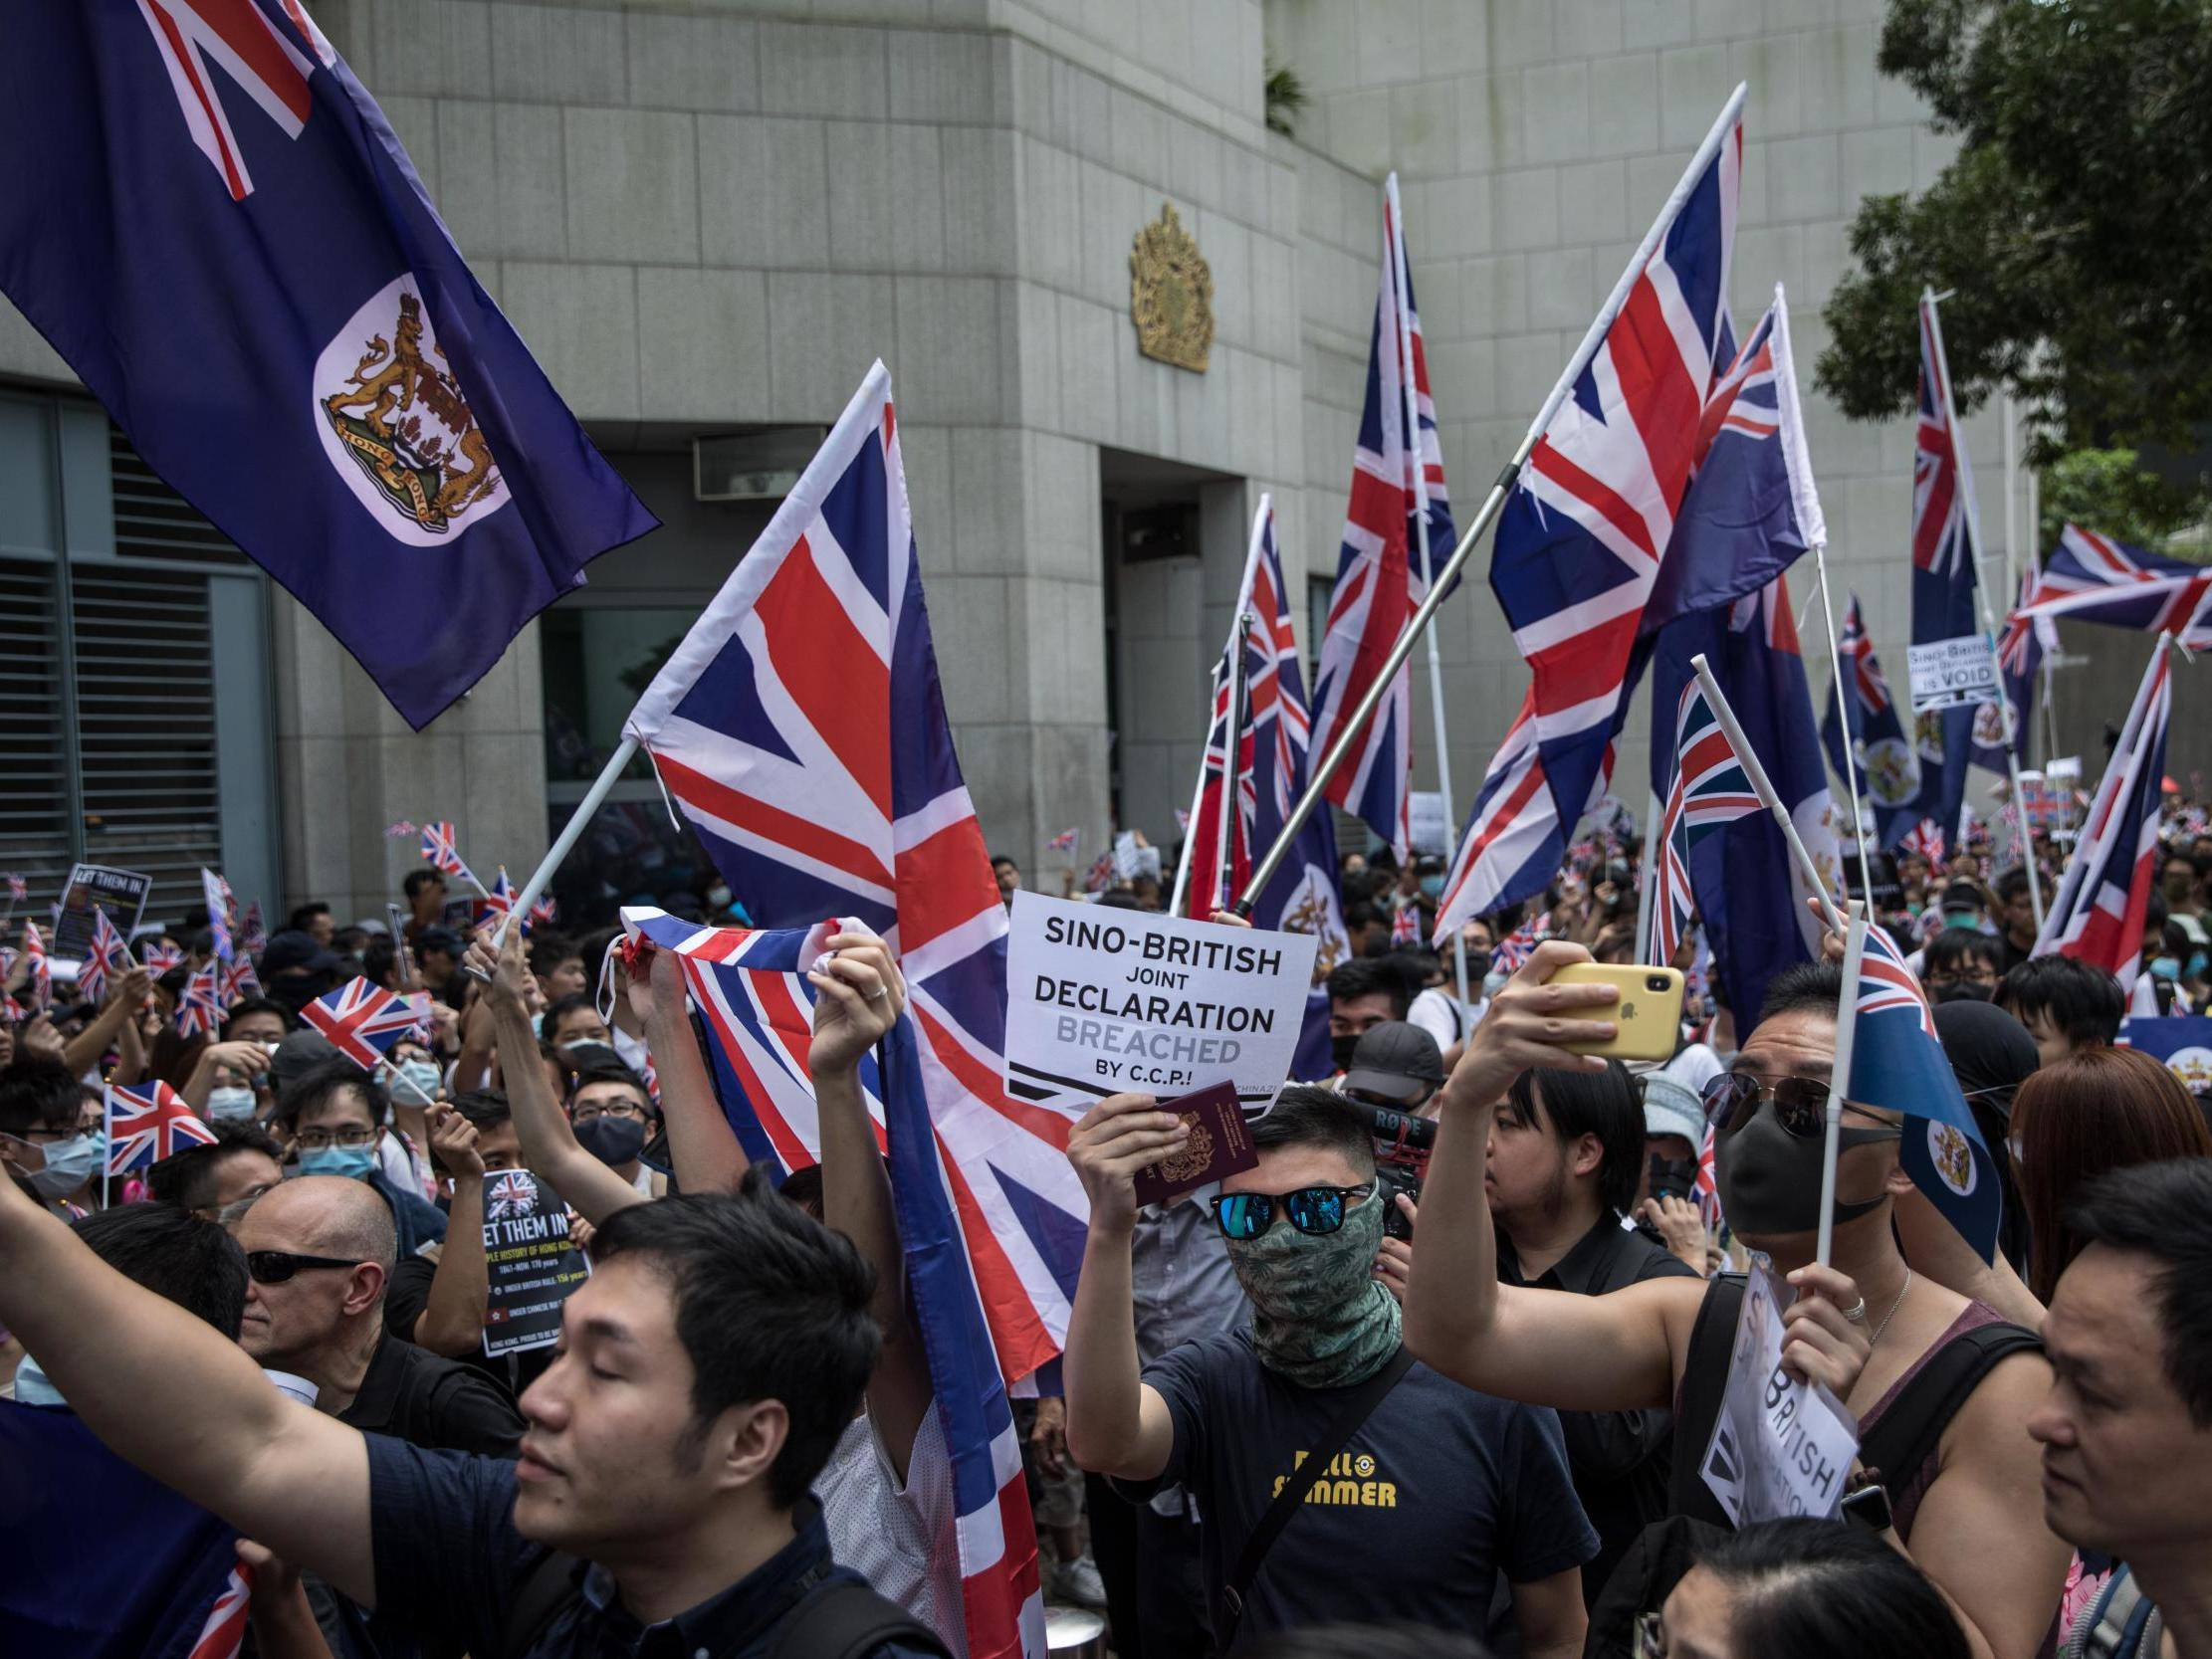 Hong Kong: Protesters sing God Save the Queen as violence erupts at anti-China demonstrations again